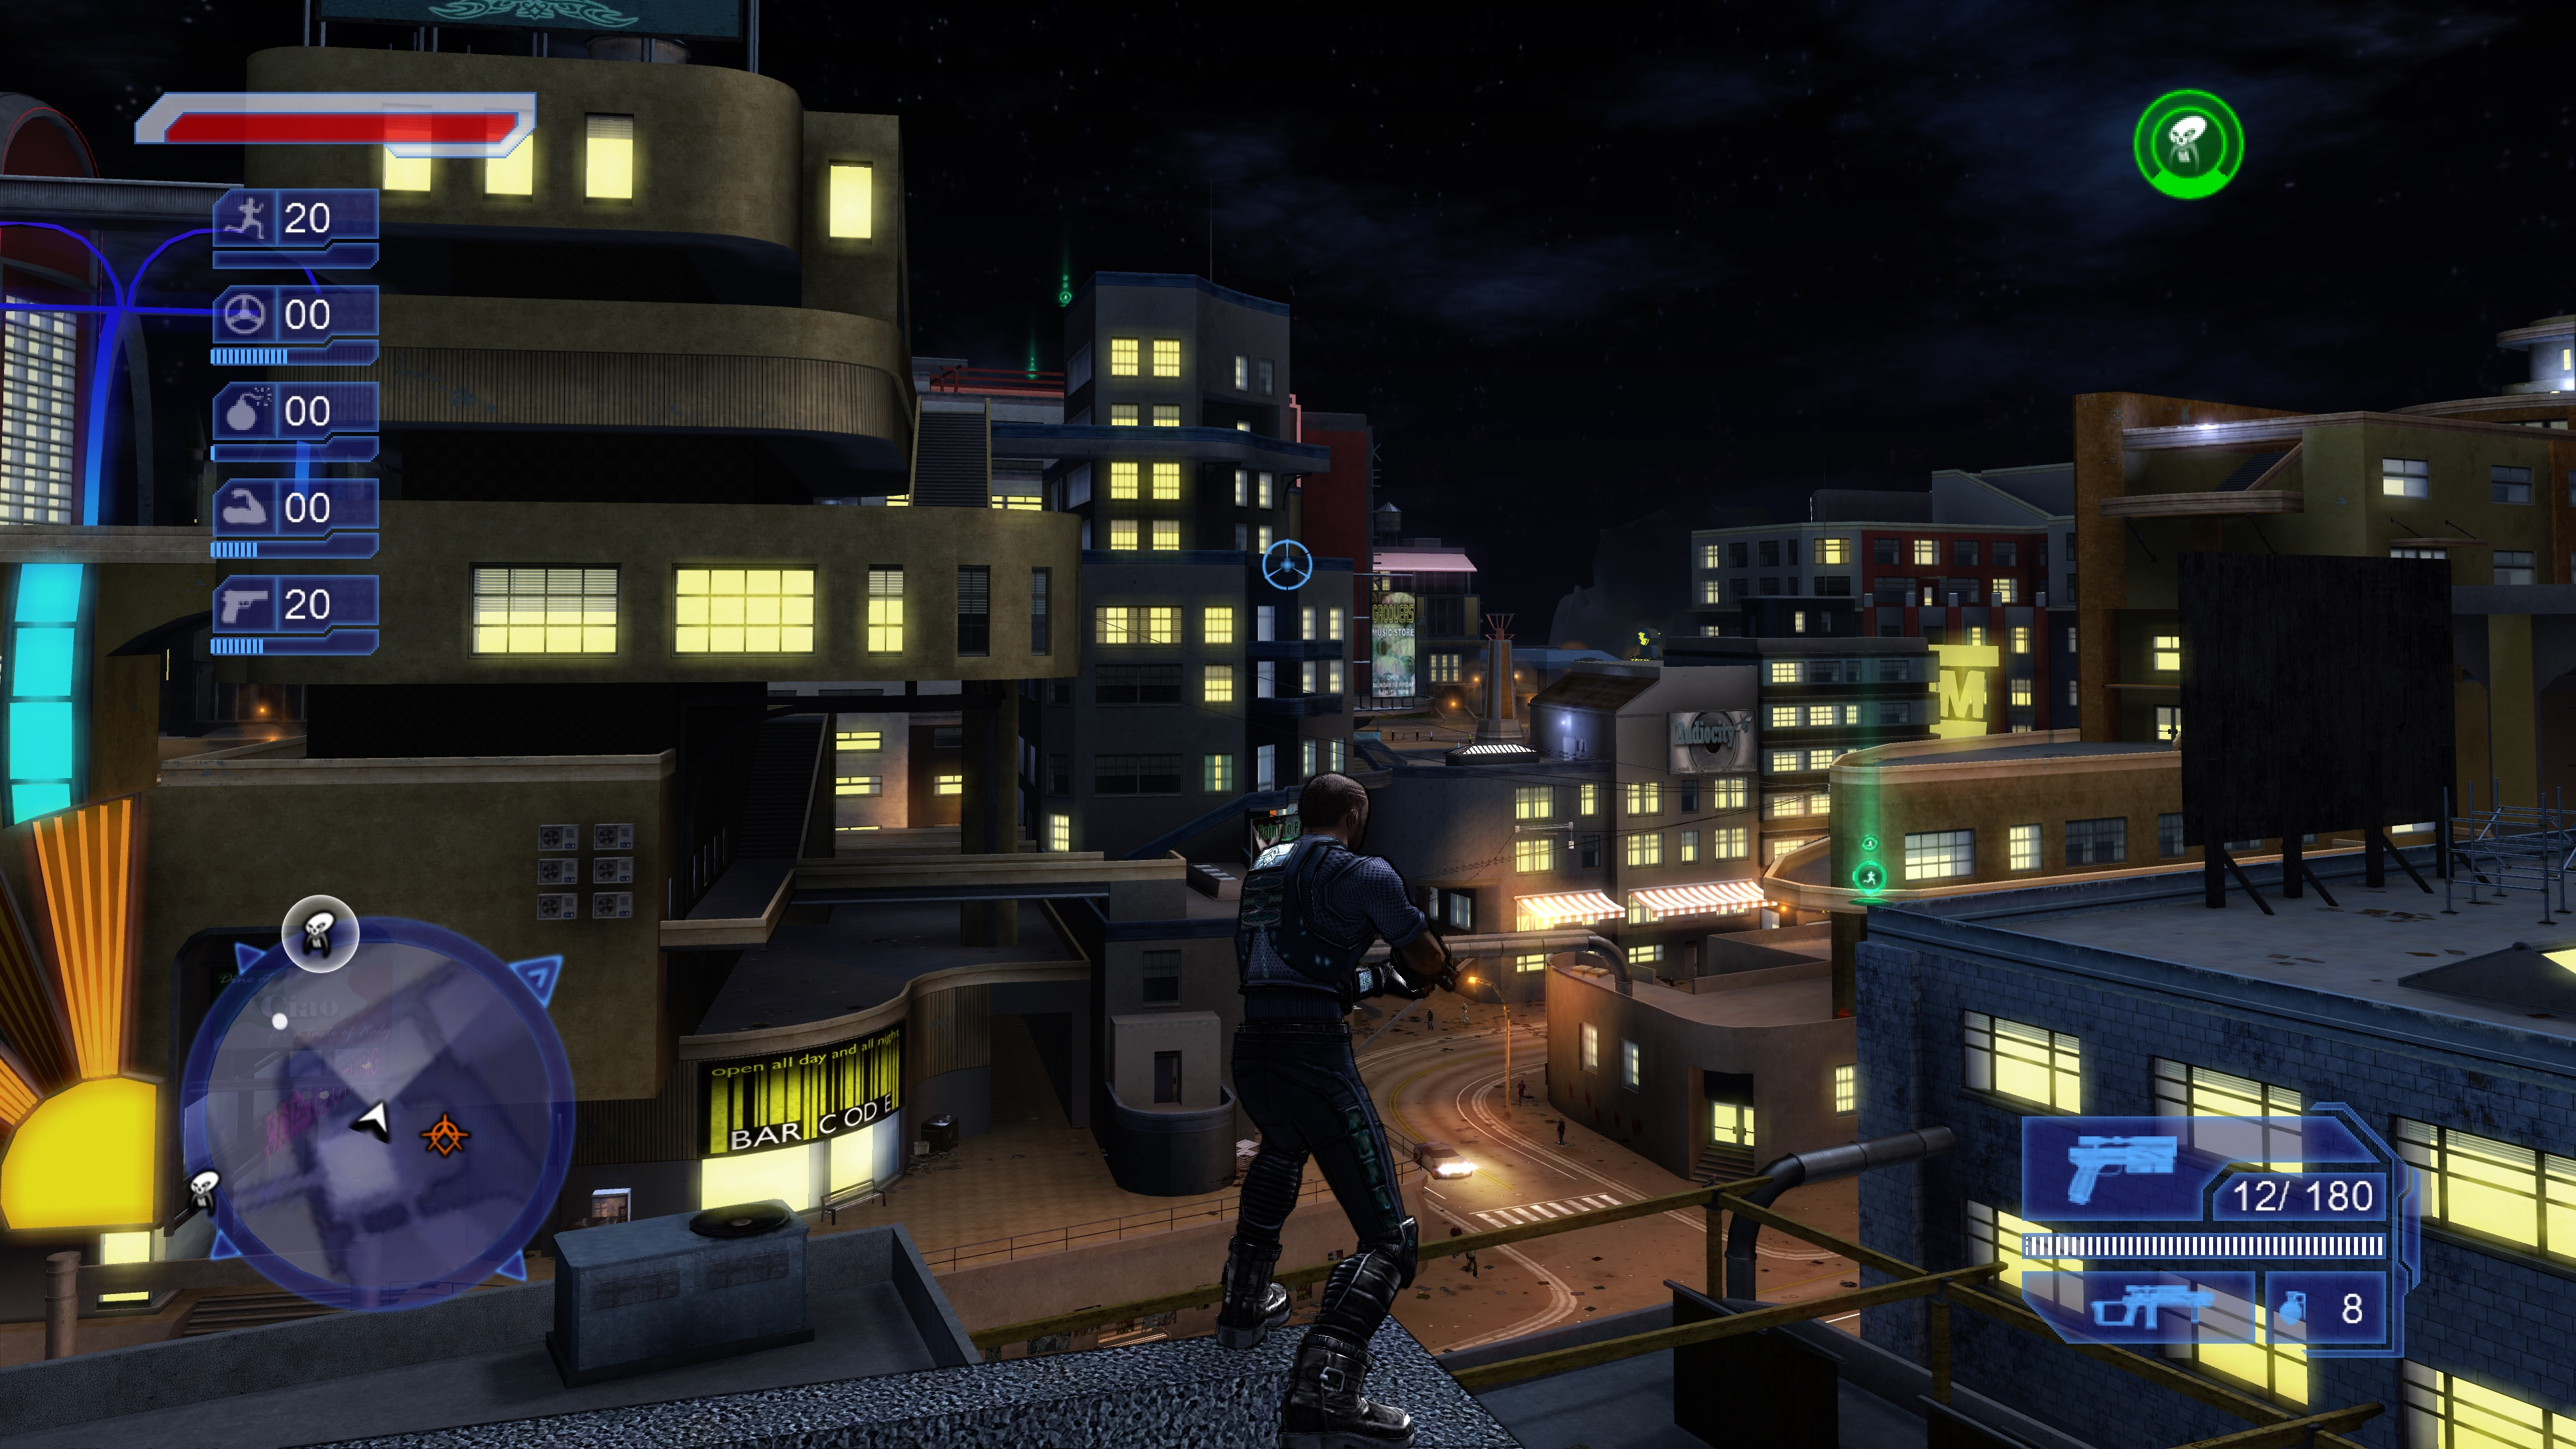 Crackdown is available for Free